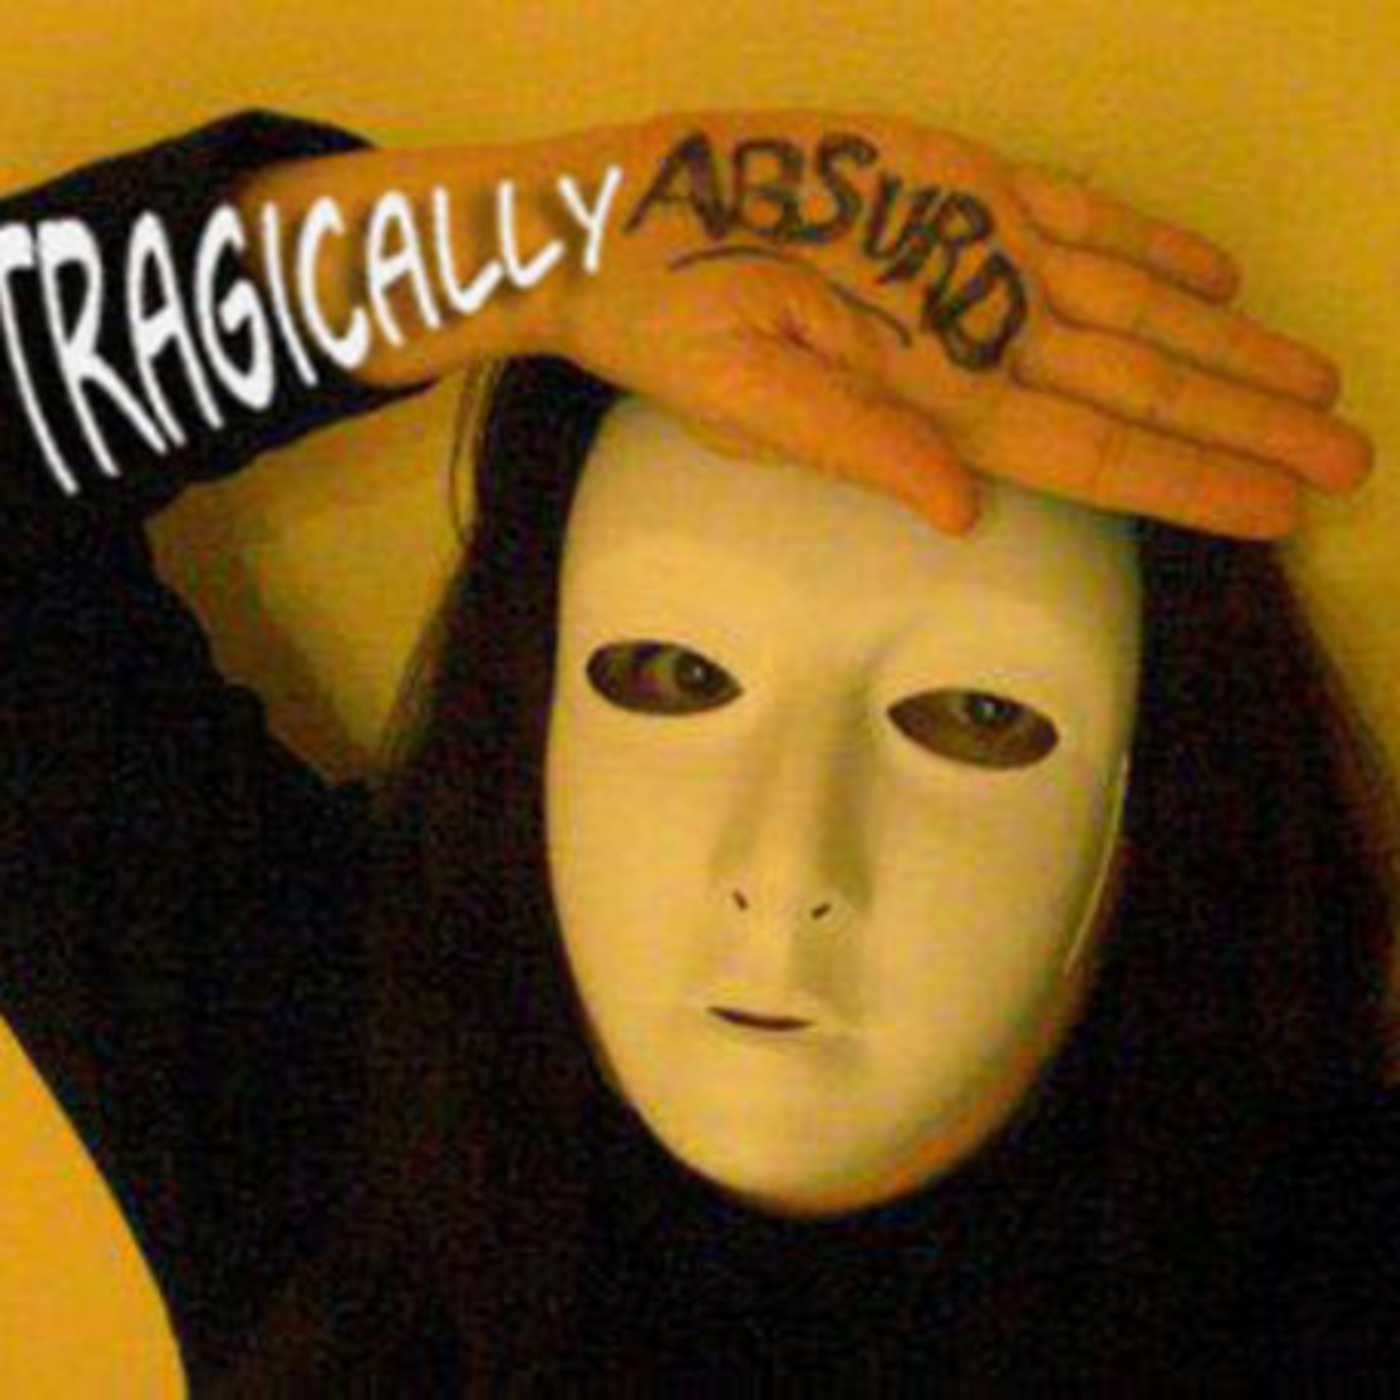 The Tragically Absurd